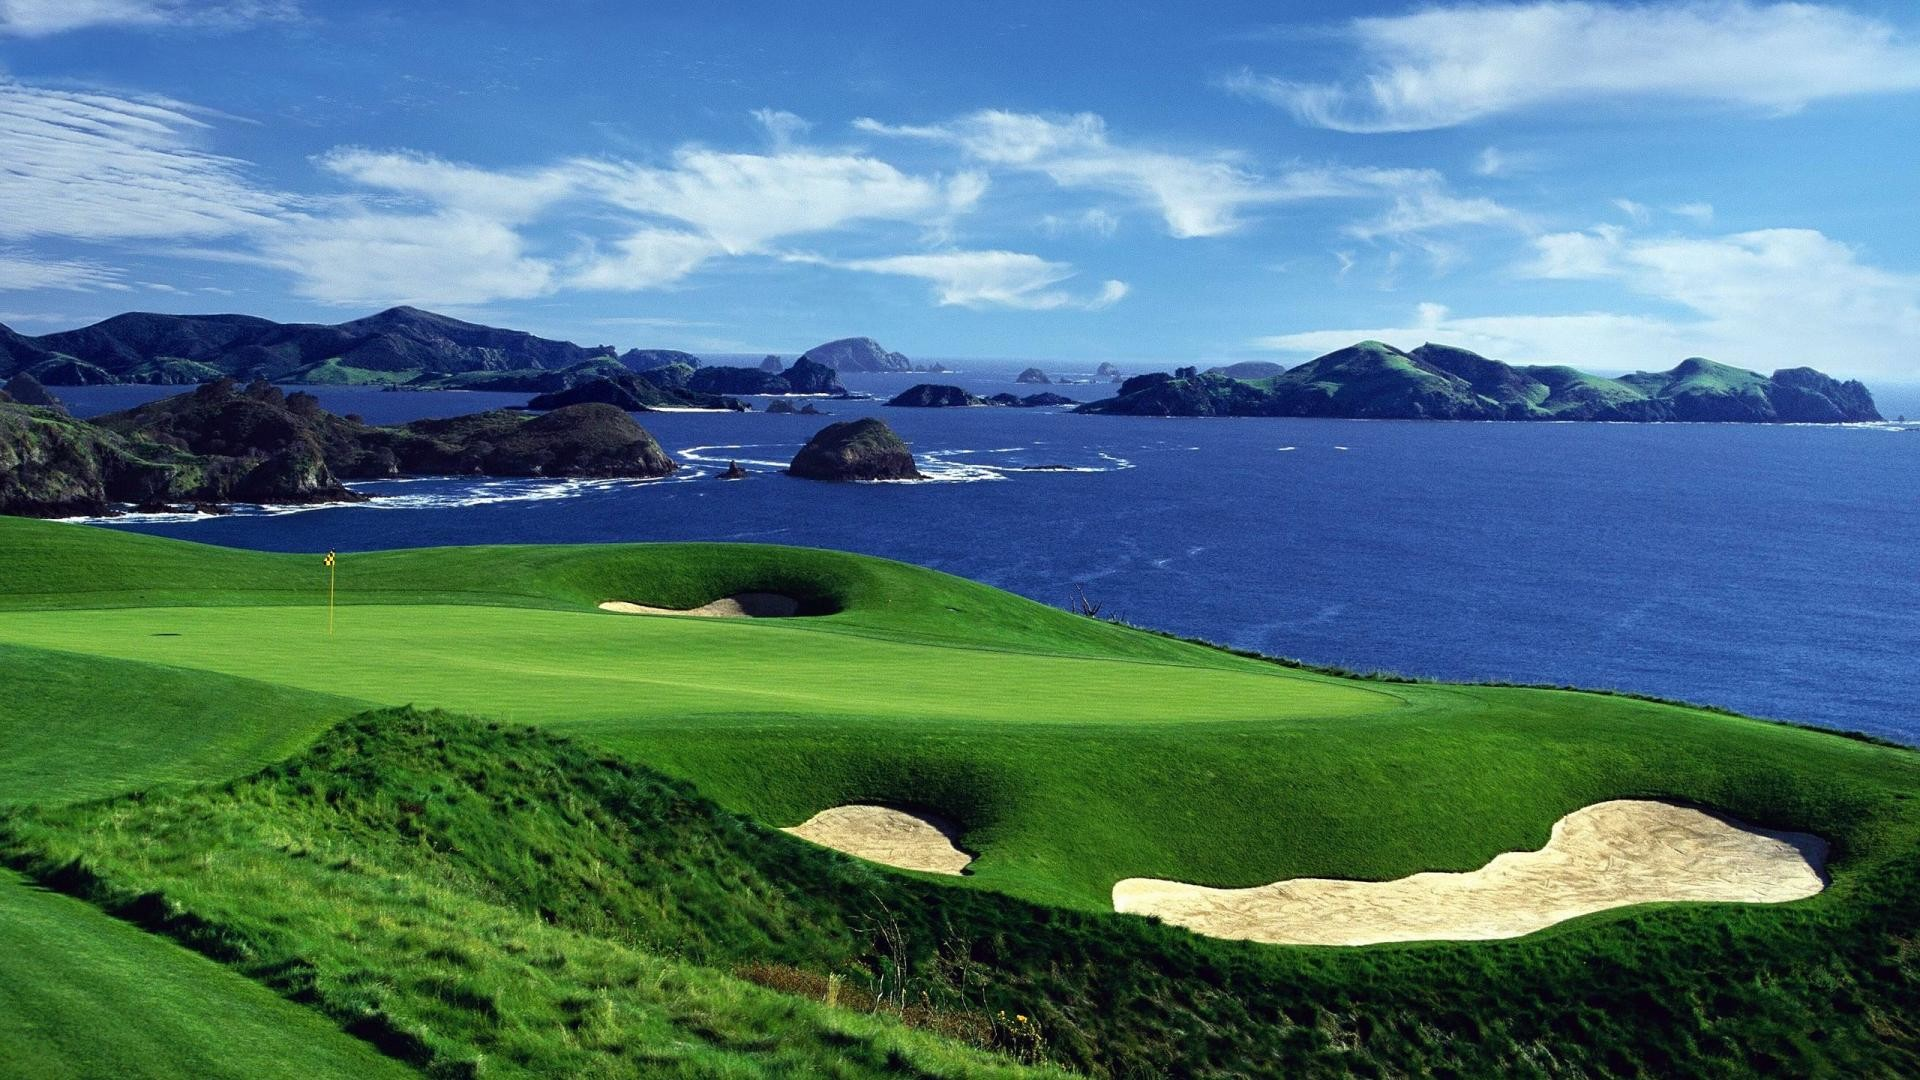 Free Golf Wallpapers Wallpaper 1920×1080 HD Golf Wallpapers (40 Wallpapers)    Adorable